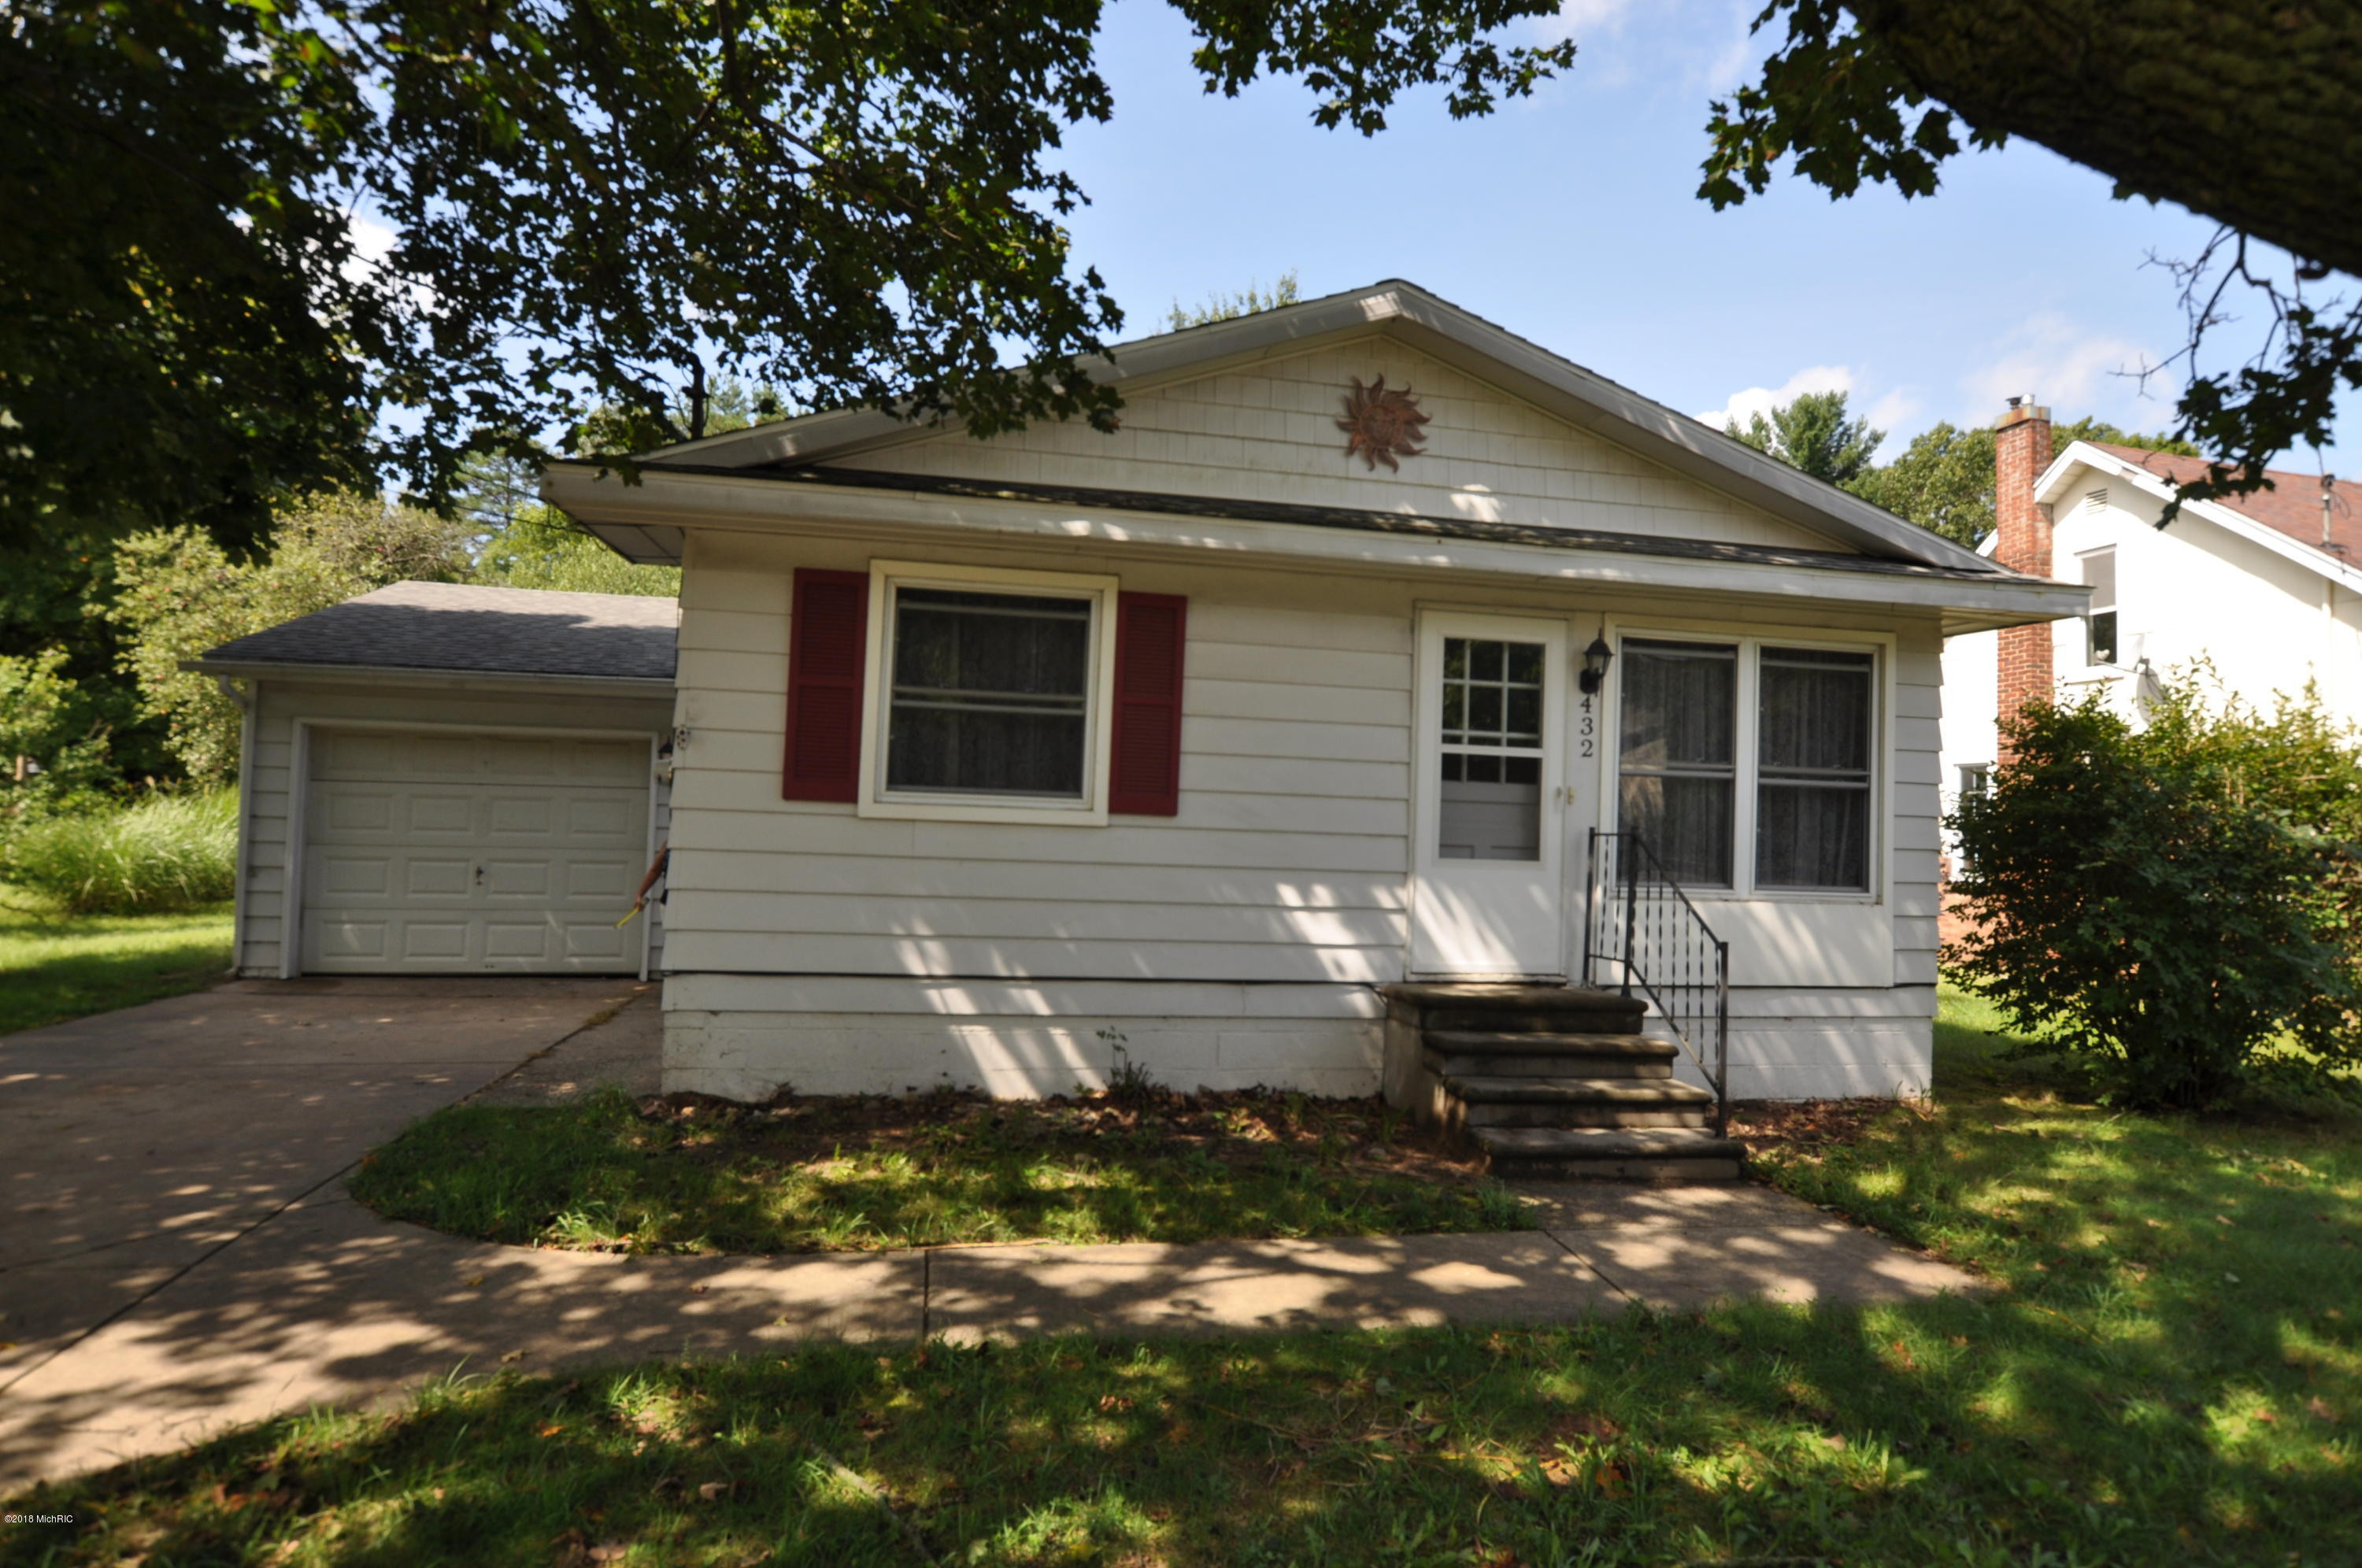 Photo for 432 S Main Street, Lawton, MI 49065 (MLS # 18043405)